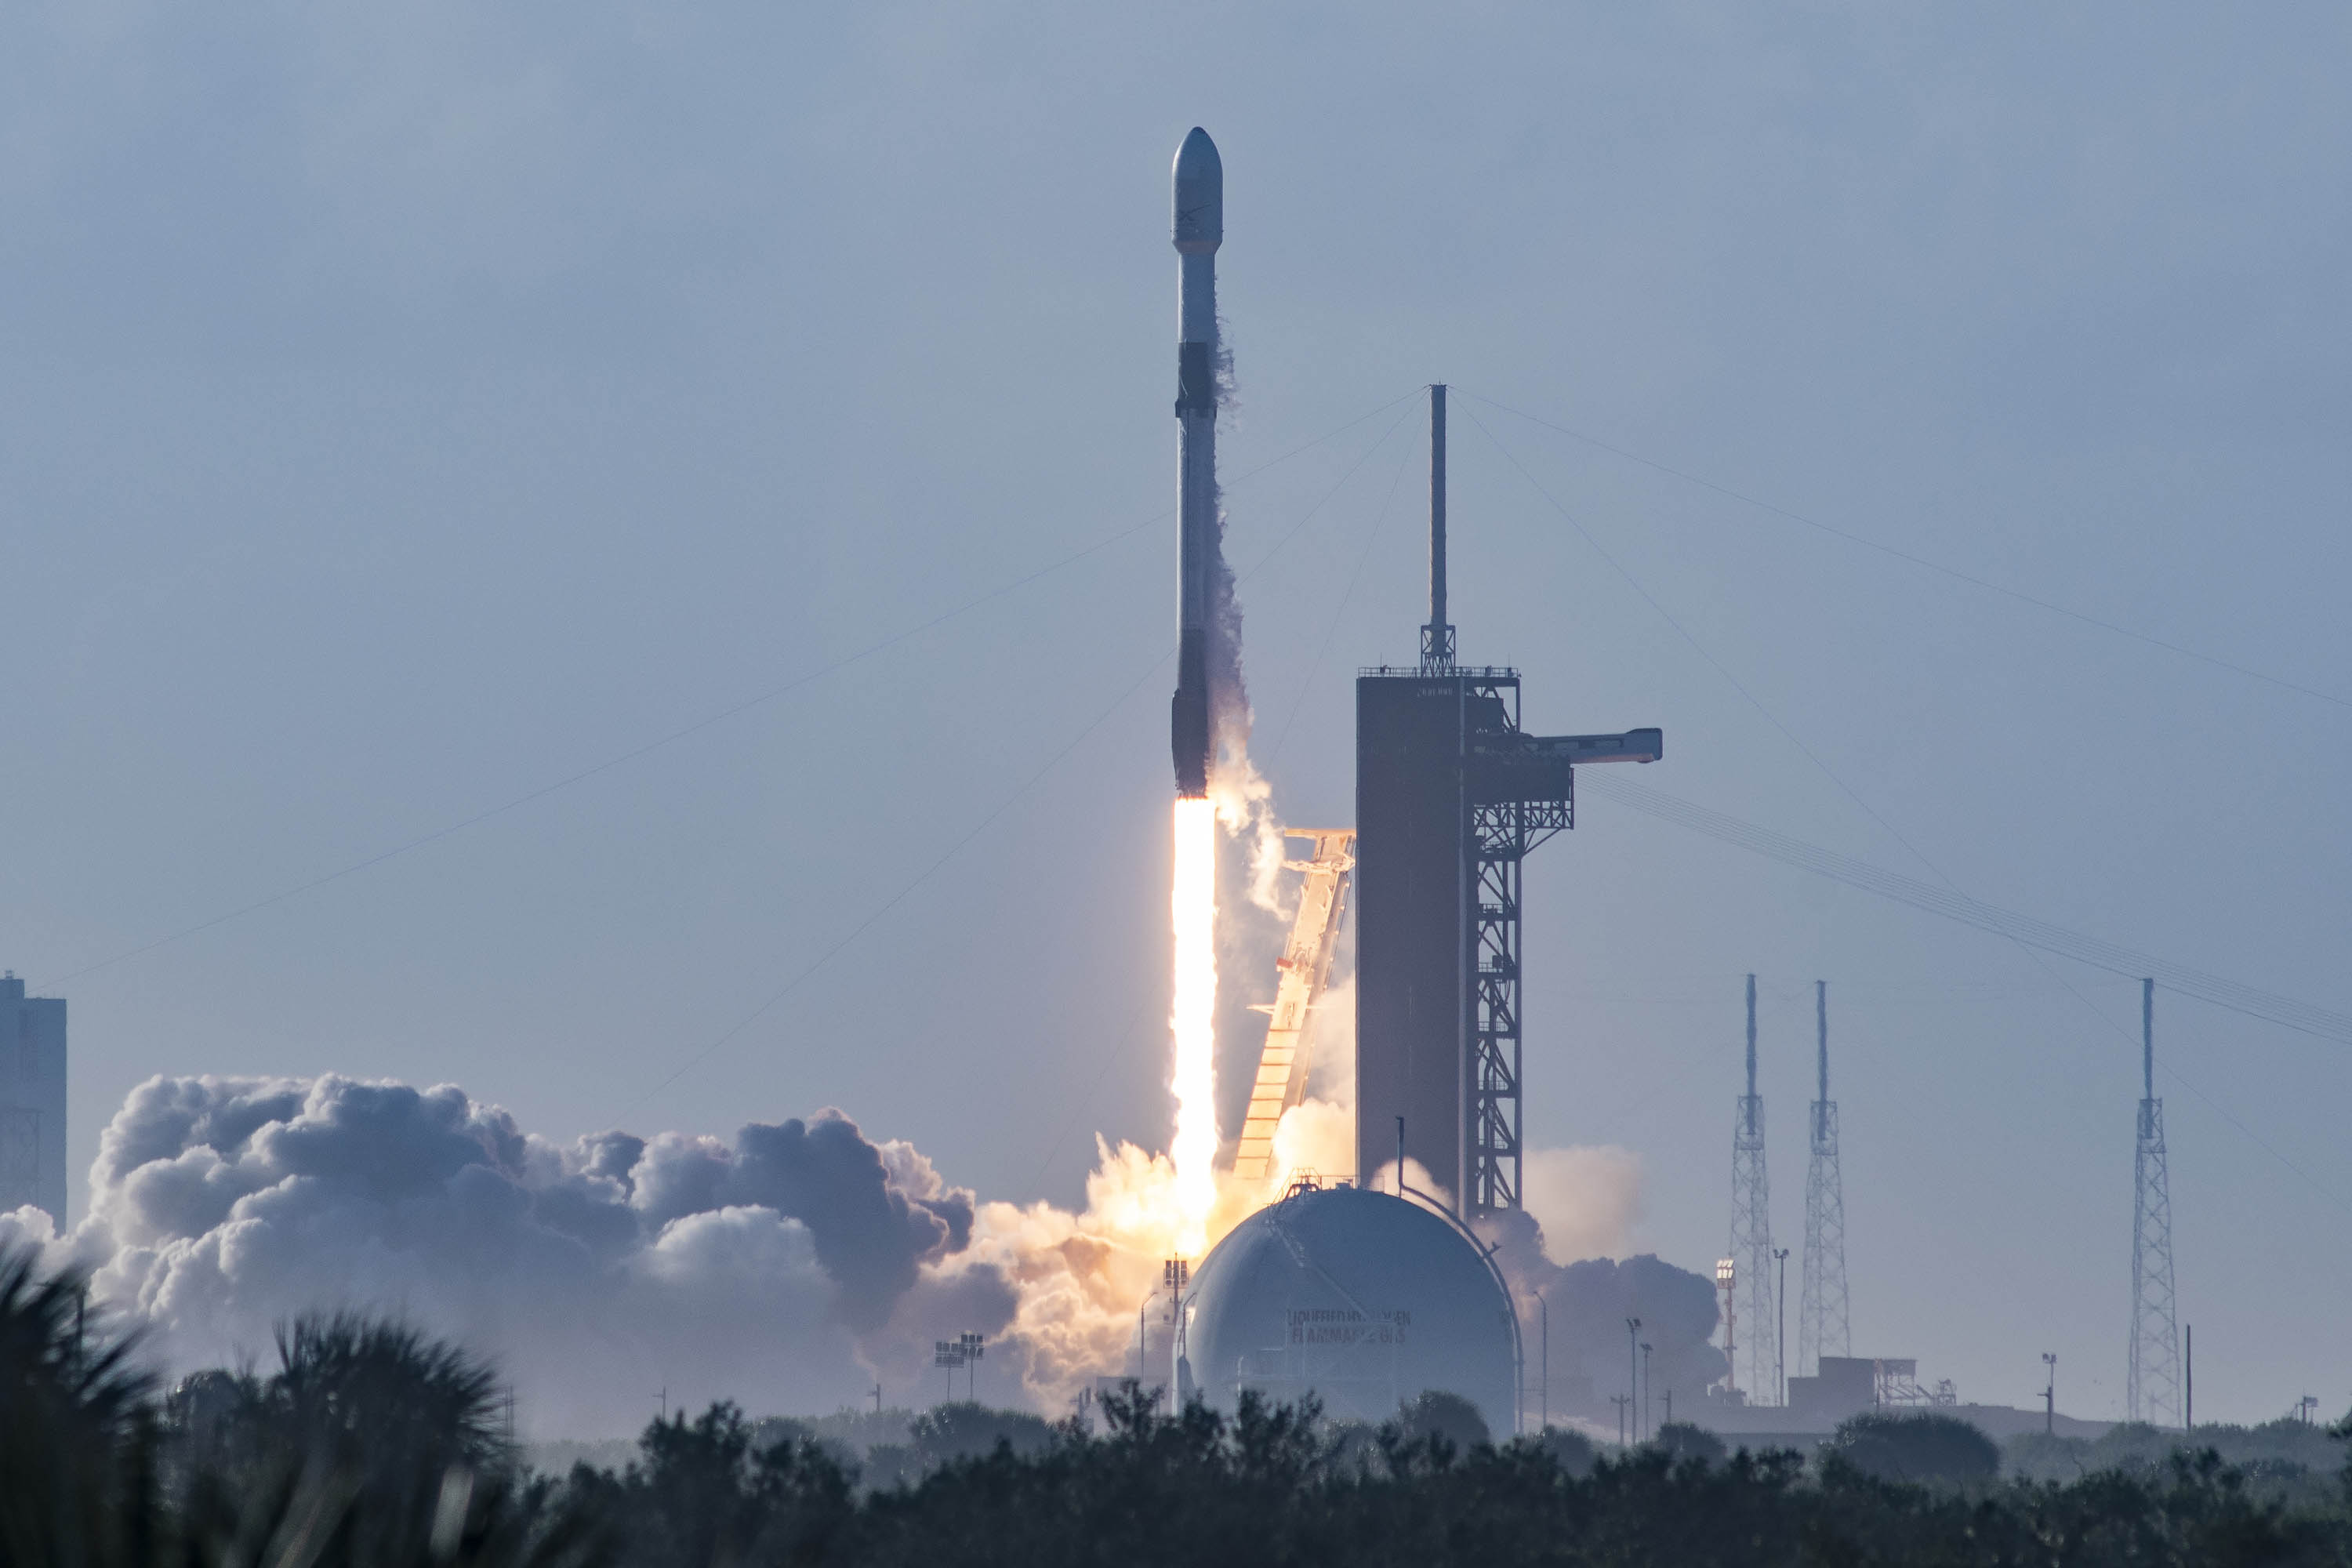 Lift off rakiety Falcon 9 wraz z satelitami Starlink